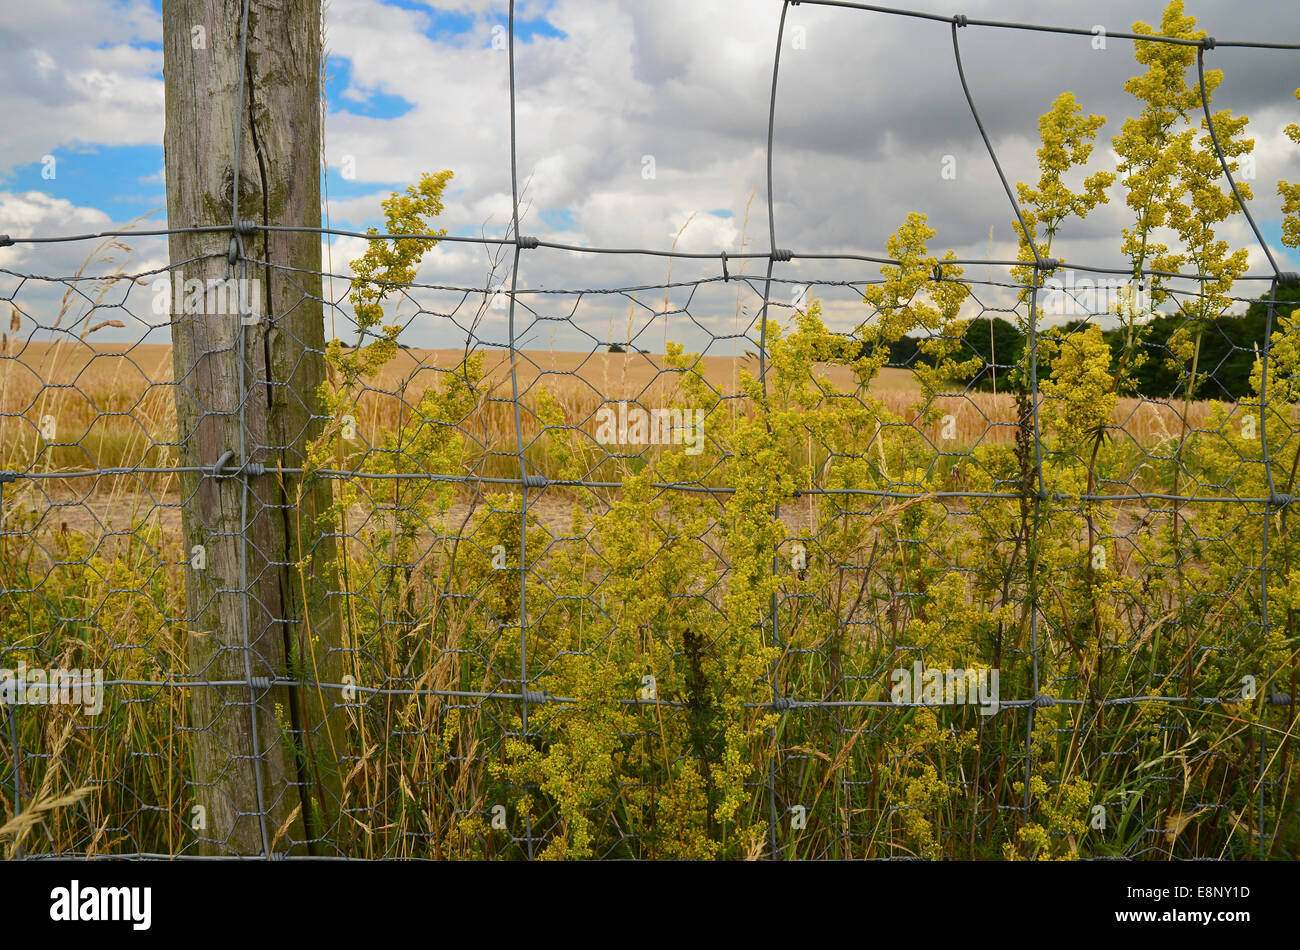 Wire fence and post in rural landscape with wildflowers - Stock Image